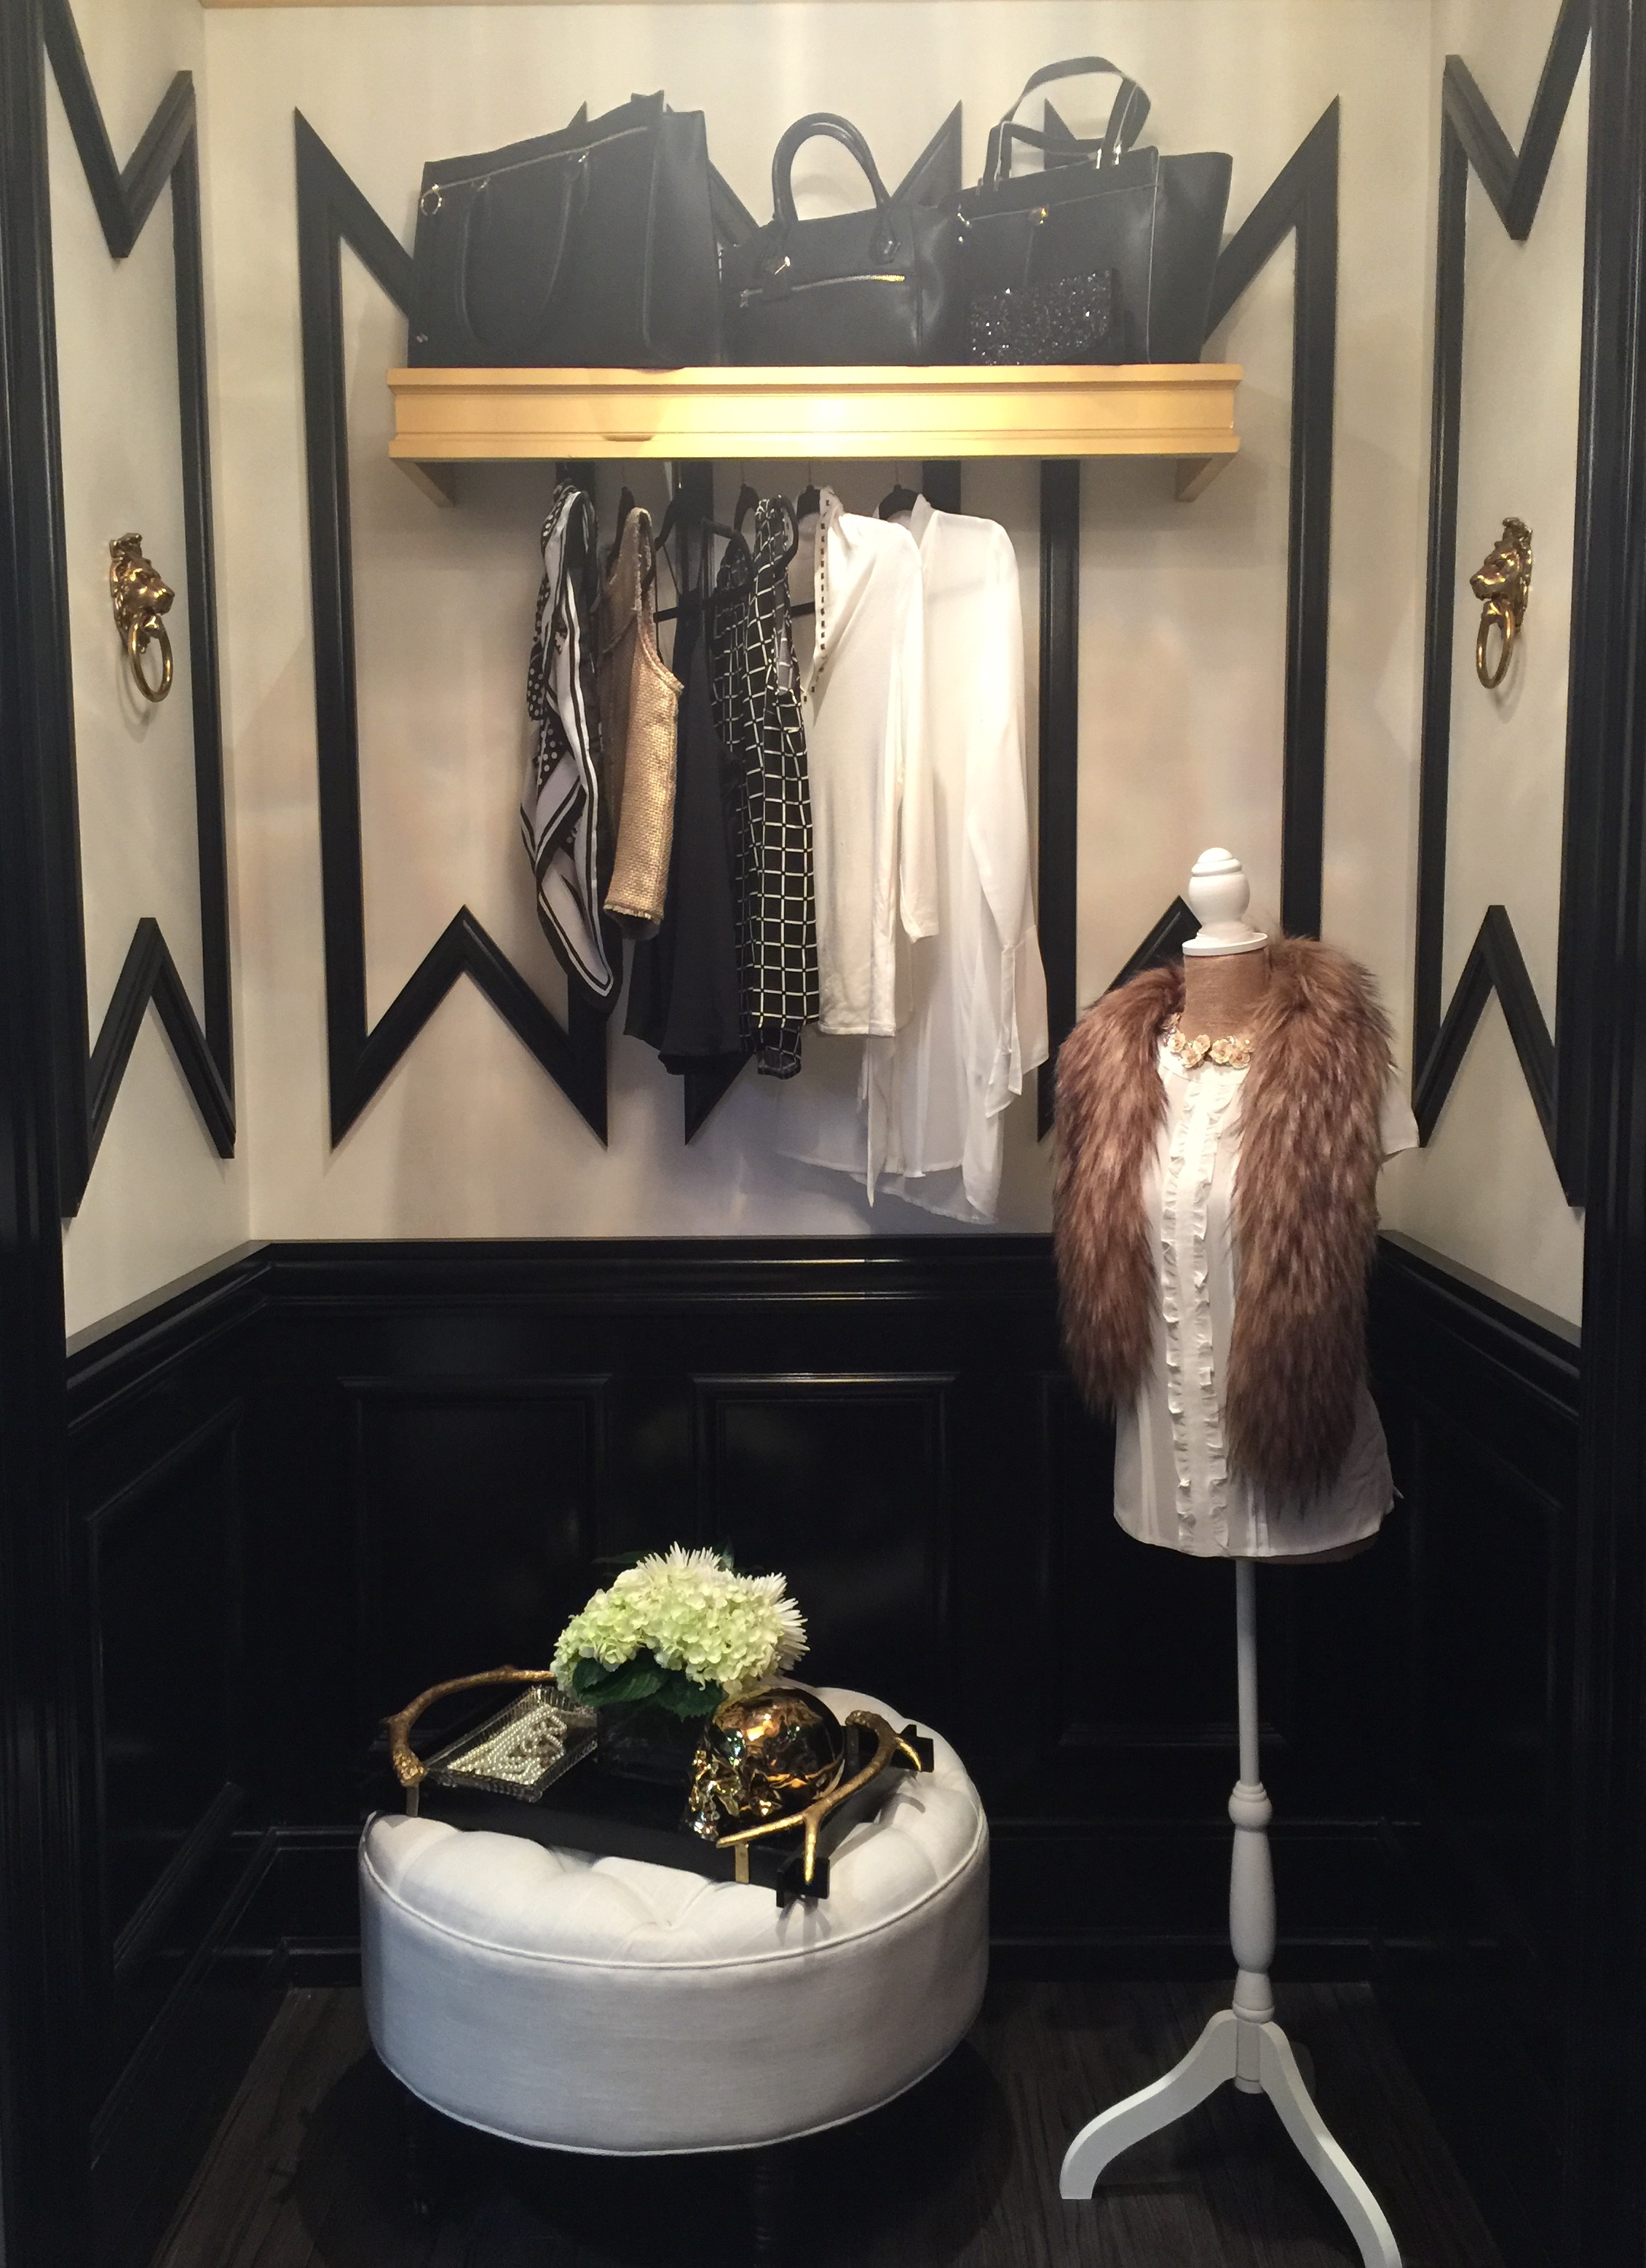 Loving the high contrast of black and cream on the walls here. No need for additional wall decor when your architectural elements do a fine job of adding interest and detail. #mouldings #closet #dressingroom #interiordesigntips